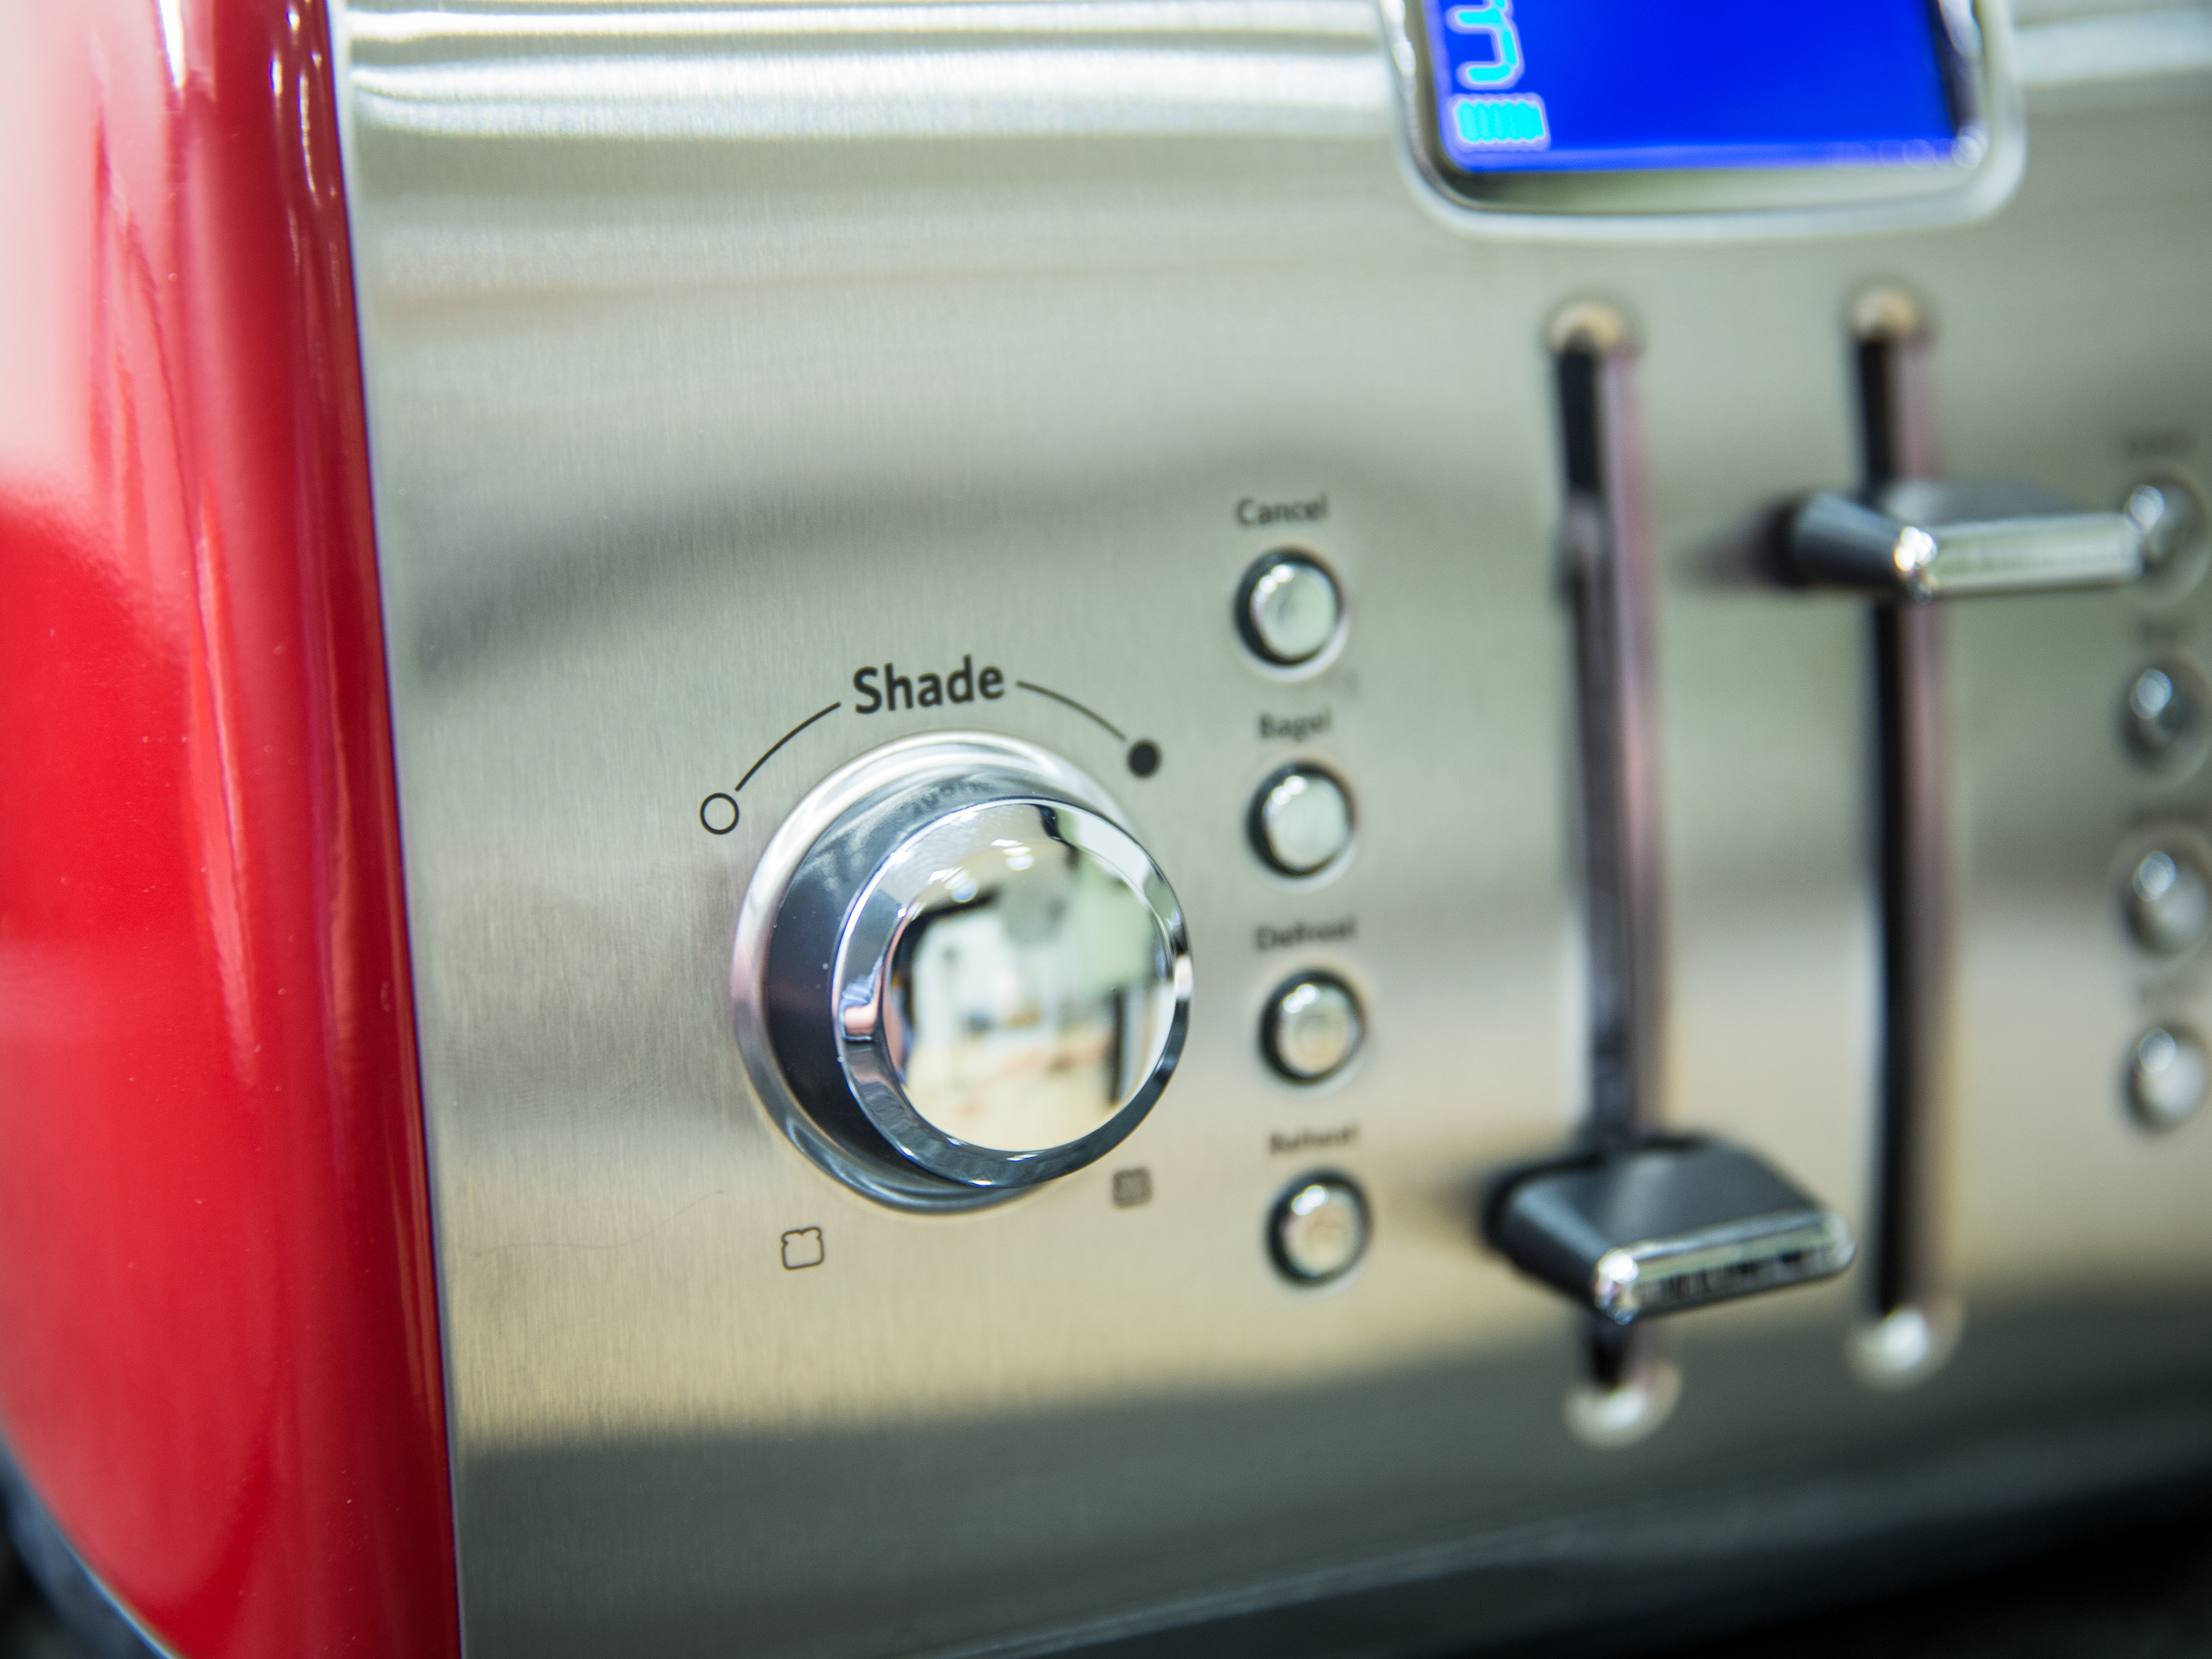 Kitchenaid 4 Slice Manual Toaster Review Cnet